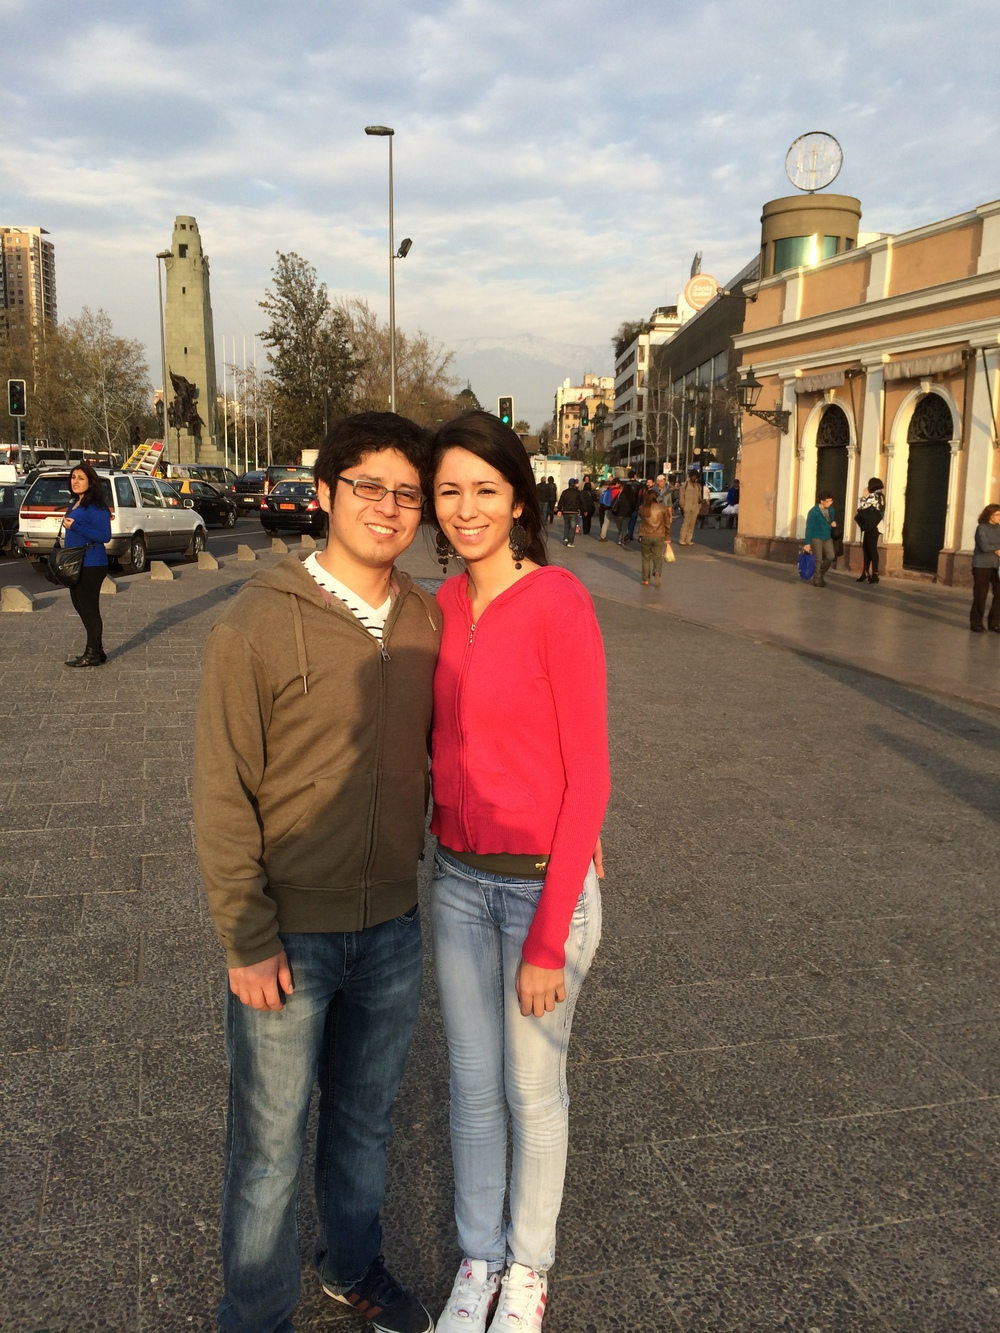 Francisco Campos and Tammy Teixeira / Santiago, Chile